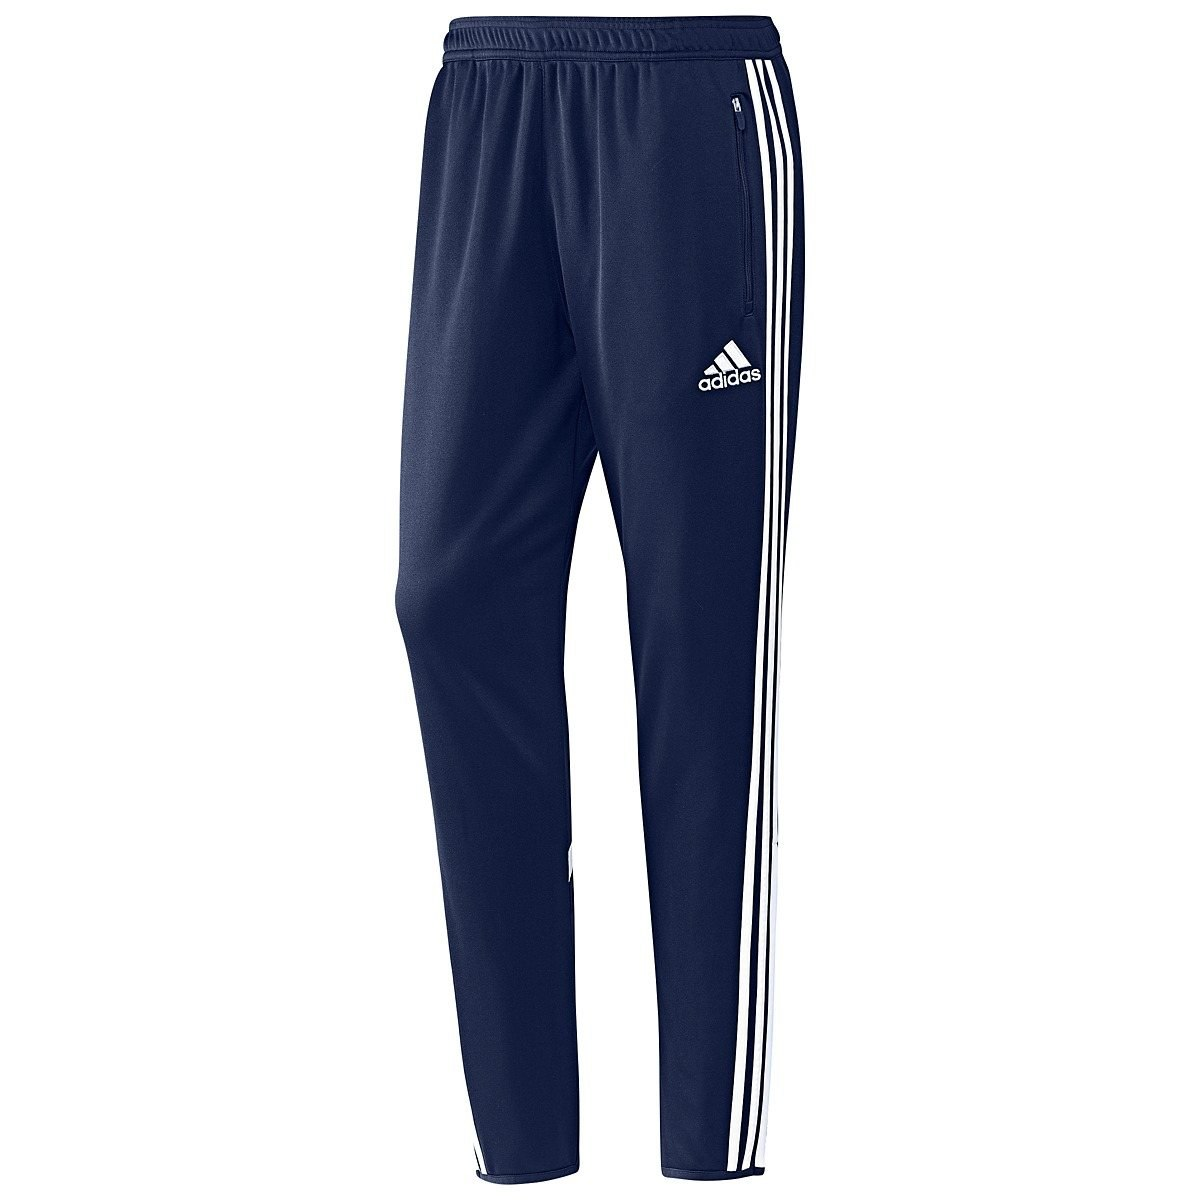 adidas condivo 14 herren hose laufhose sporthose. Black Bedroom Furniture Sets. Home Design Ideas